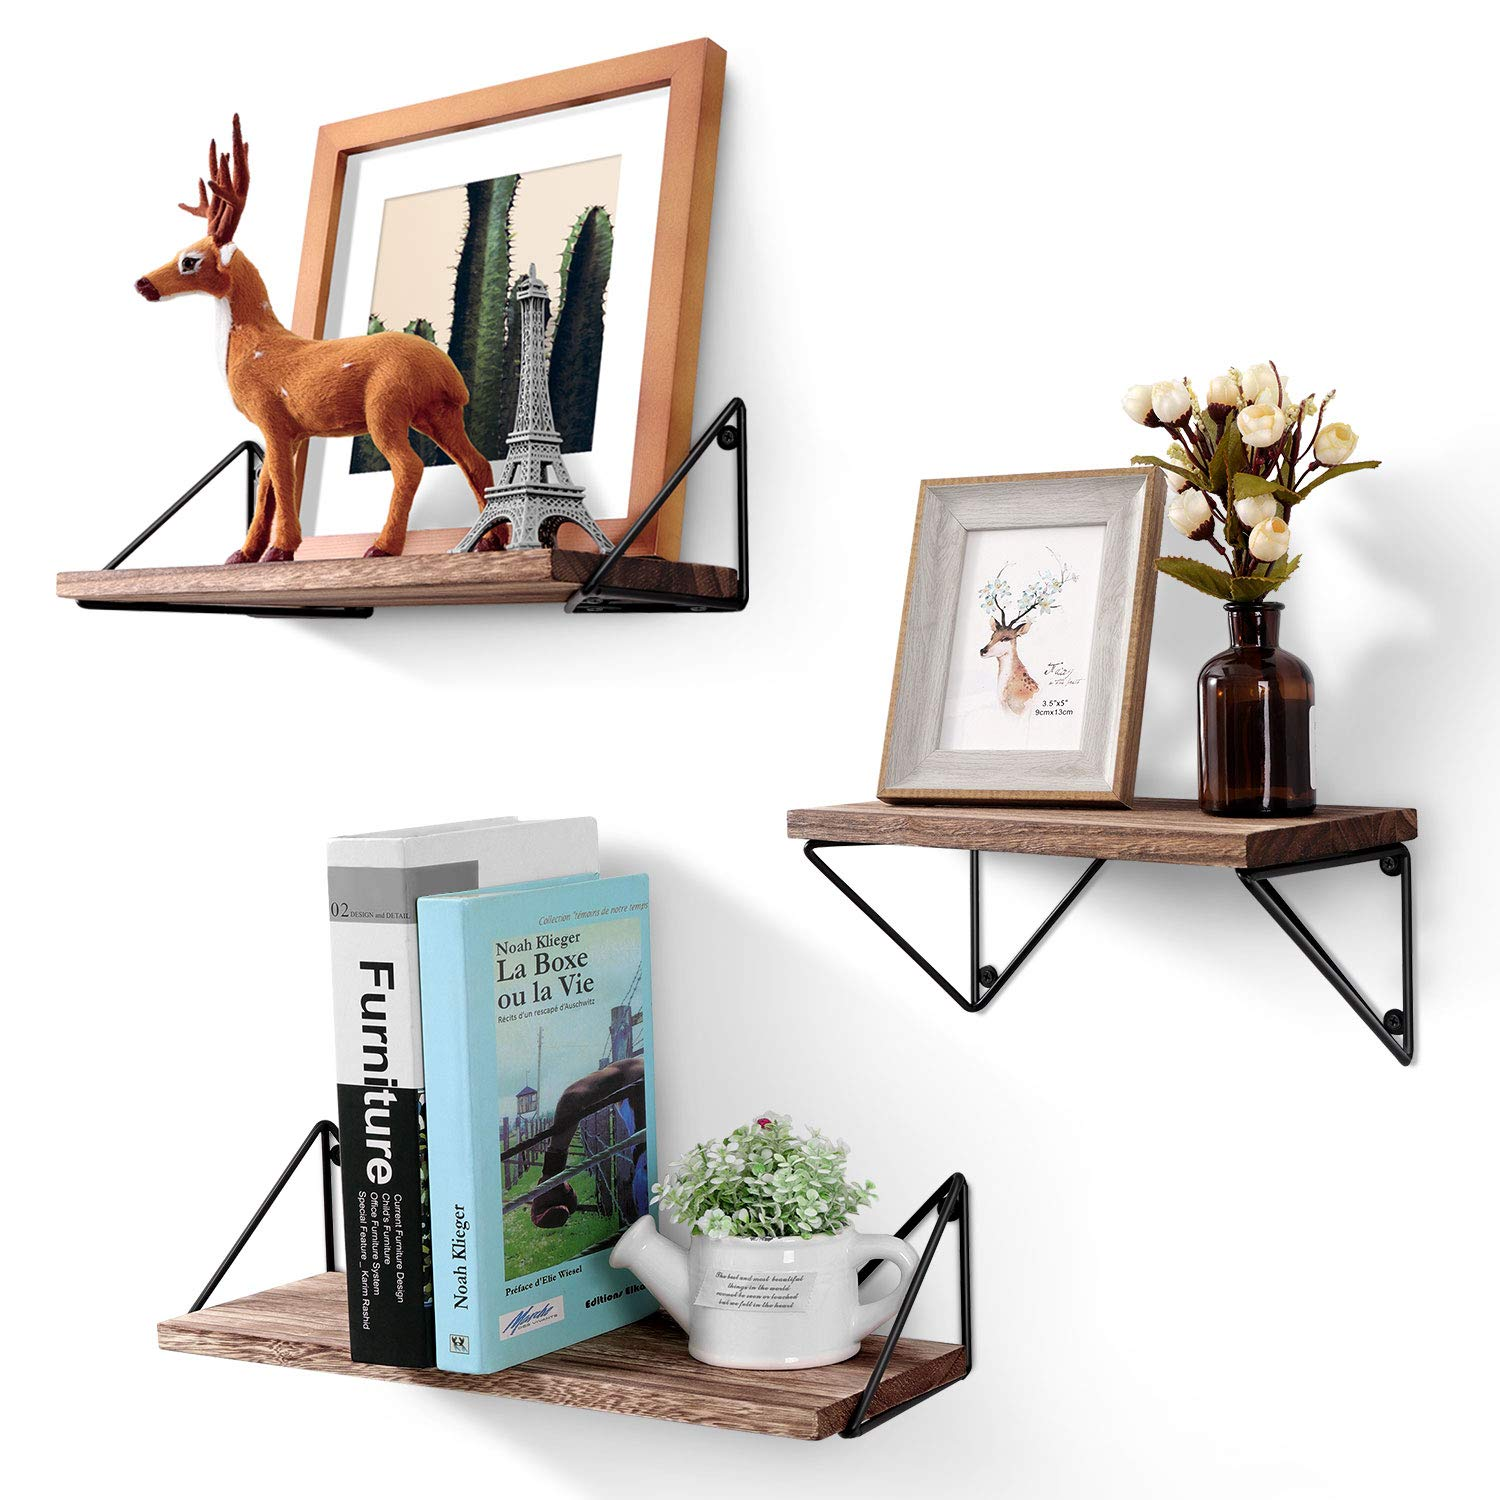 bayka floating shelves wall mounted set rustic wood living room for bedroom bathroom home kitchen ikea shelf holder video game storage tower grace collection work desk large